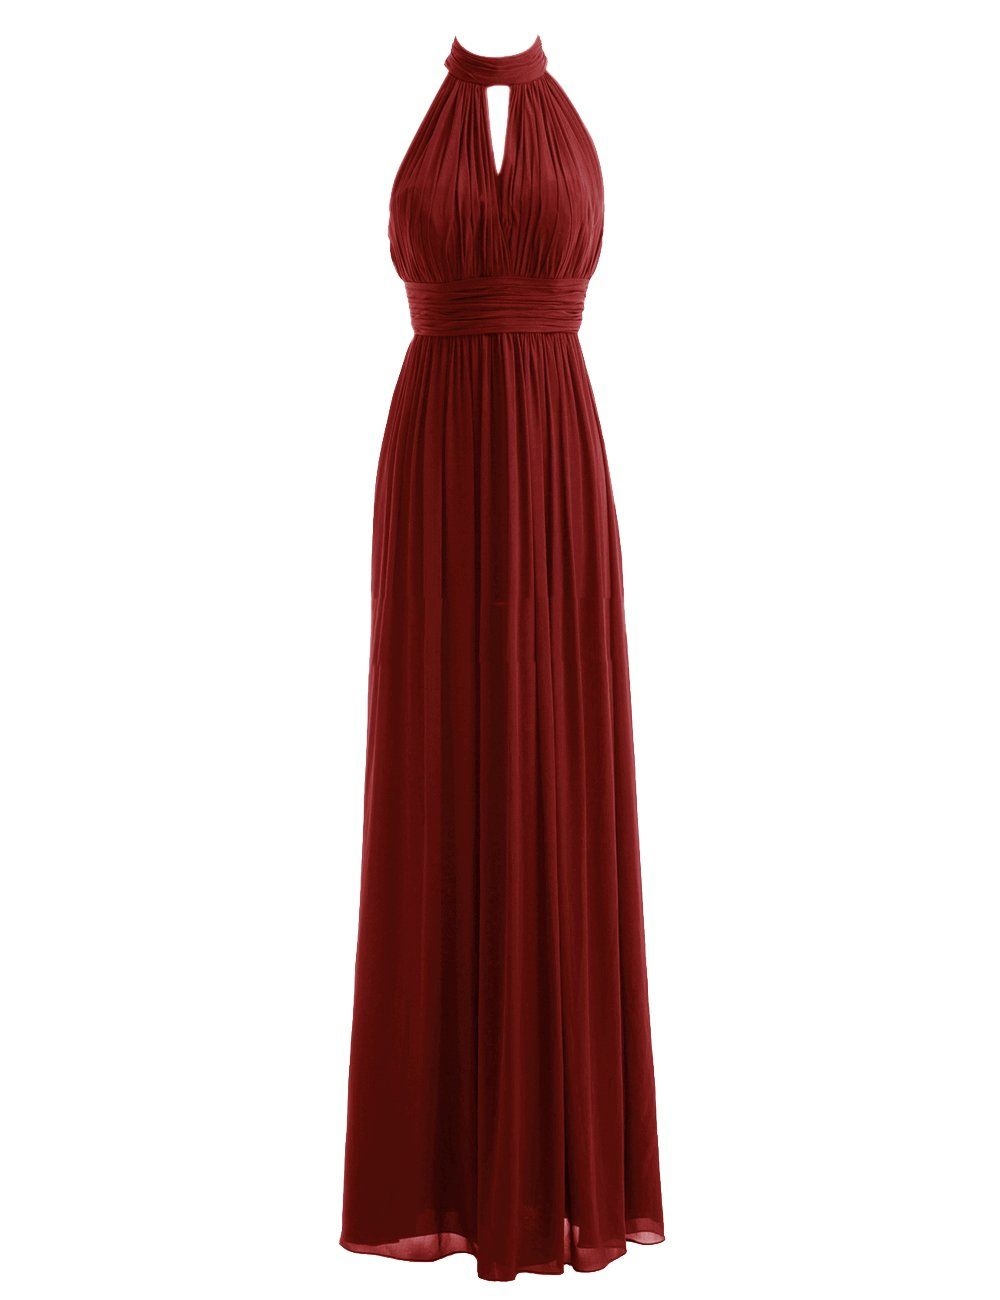 Diyouth High Neck Long Bridesmaid Dresses Slit Prom Evening Gowns ...